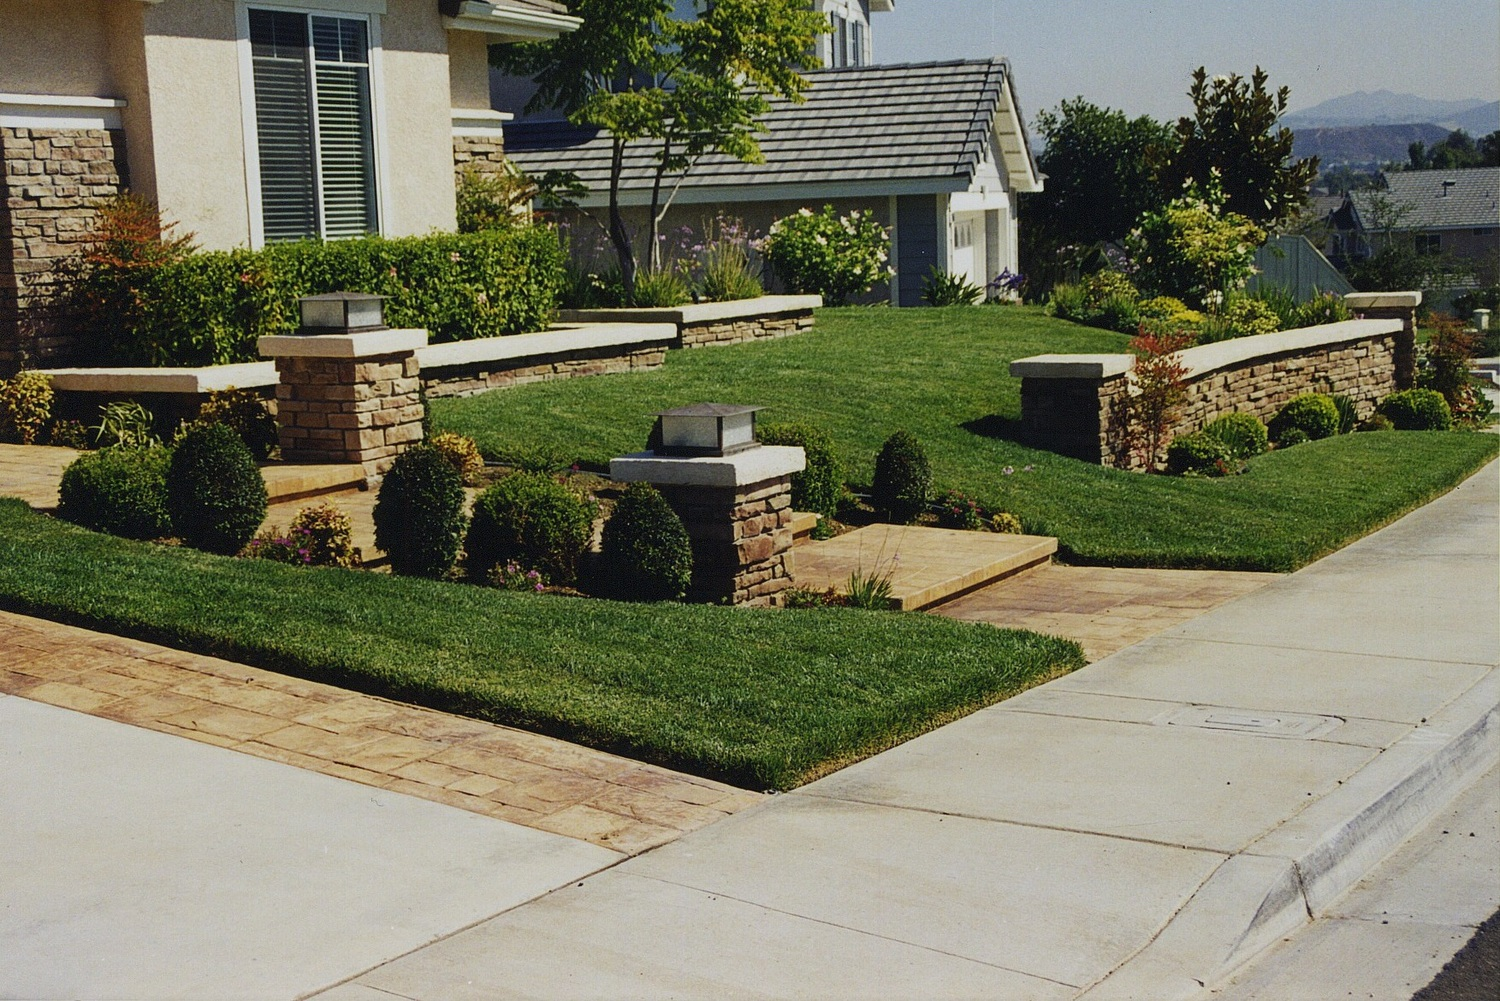 Walls and Sofstacpe.jpg - FAQ — Thousand Oaks Landscaping — Green Horizon Landscaping, Inc.